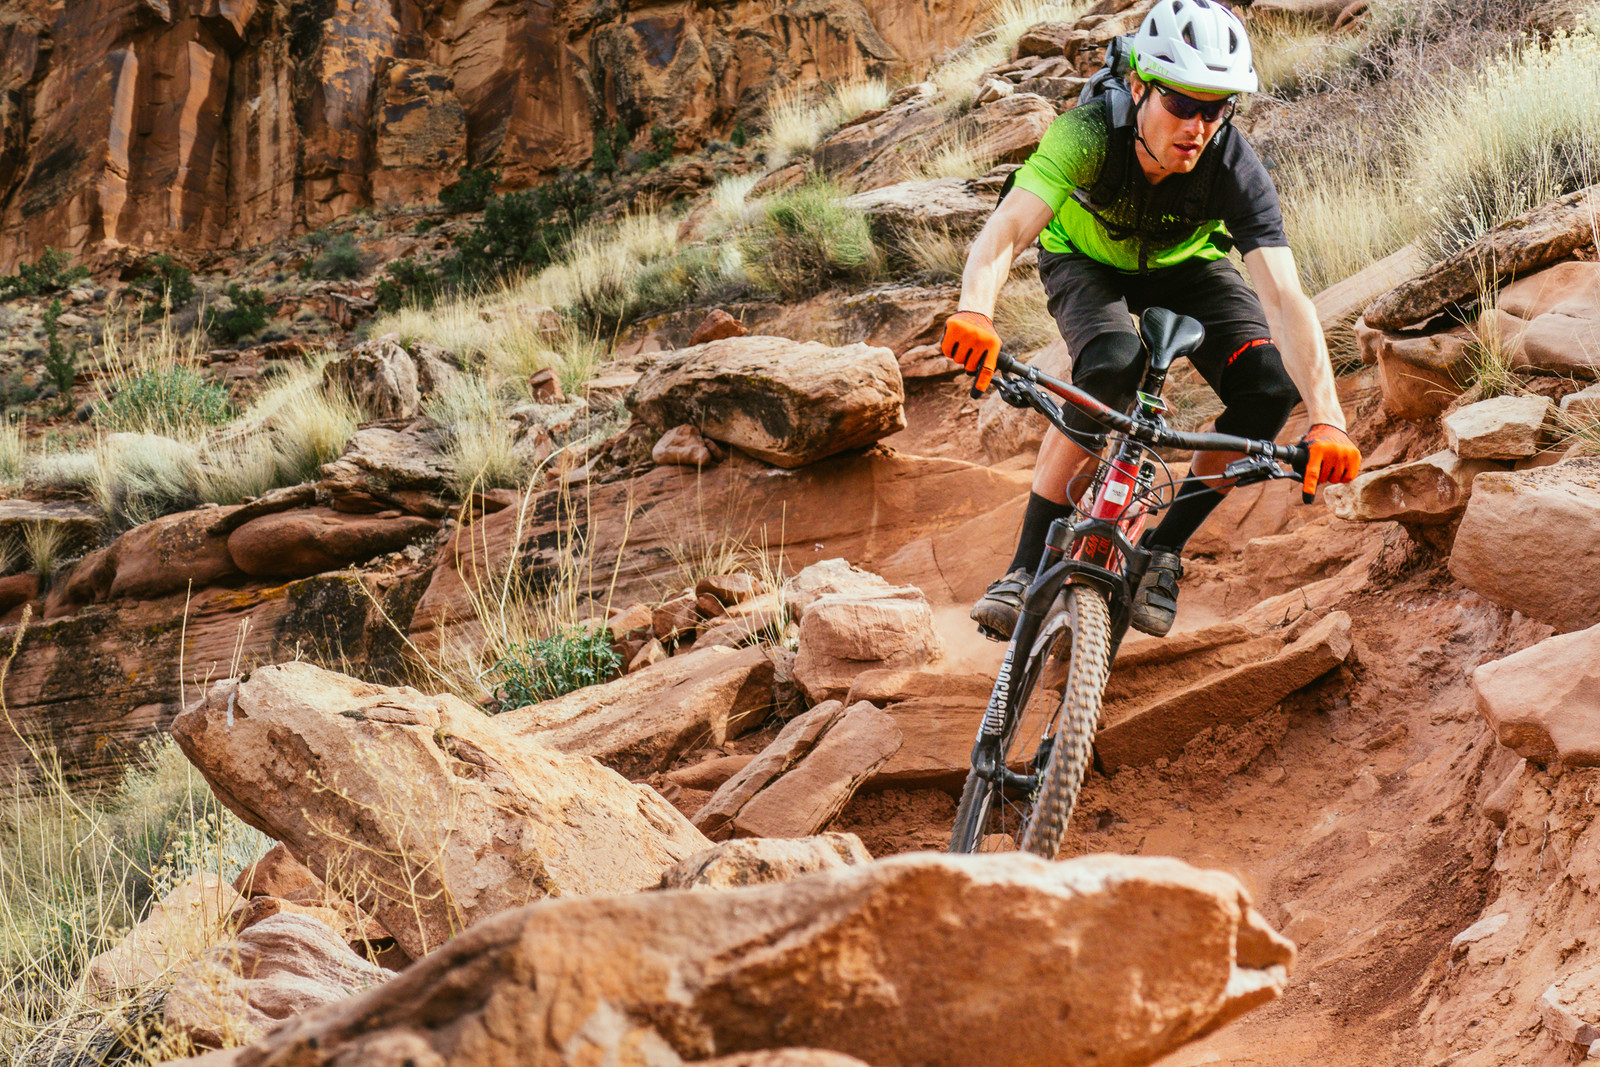 Alex 'KrunkShox' McGuinnis puts the new Pike to good use on a tricky section of Jackson's trail in Moab.